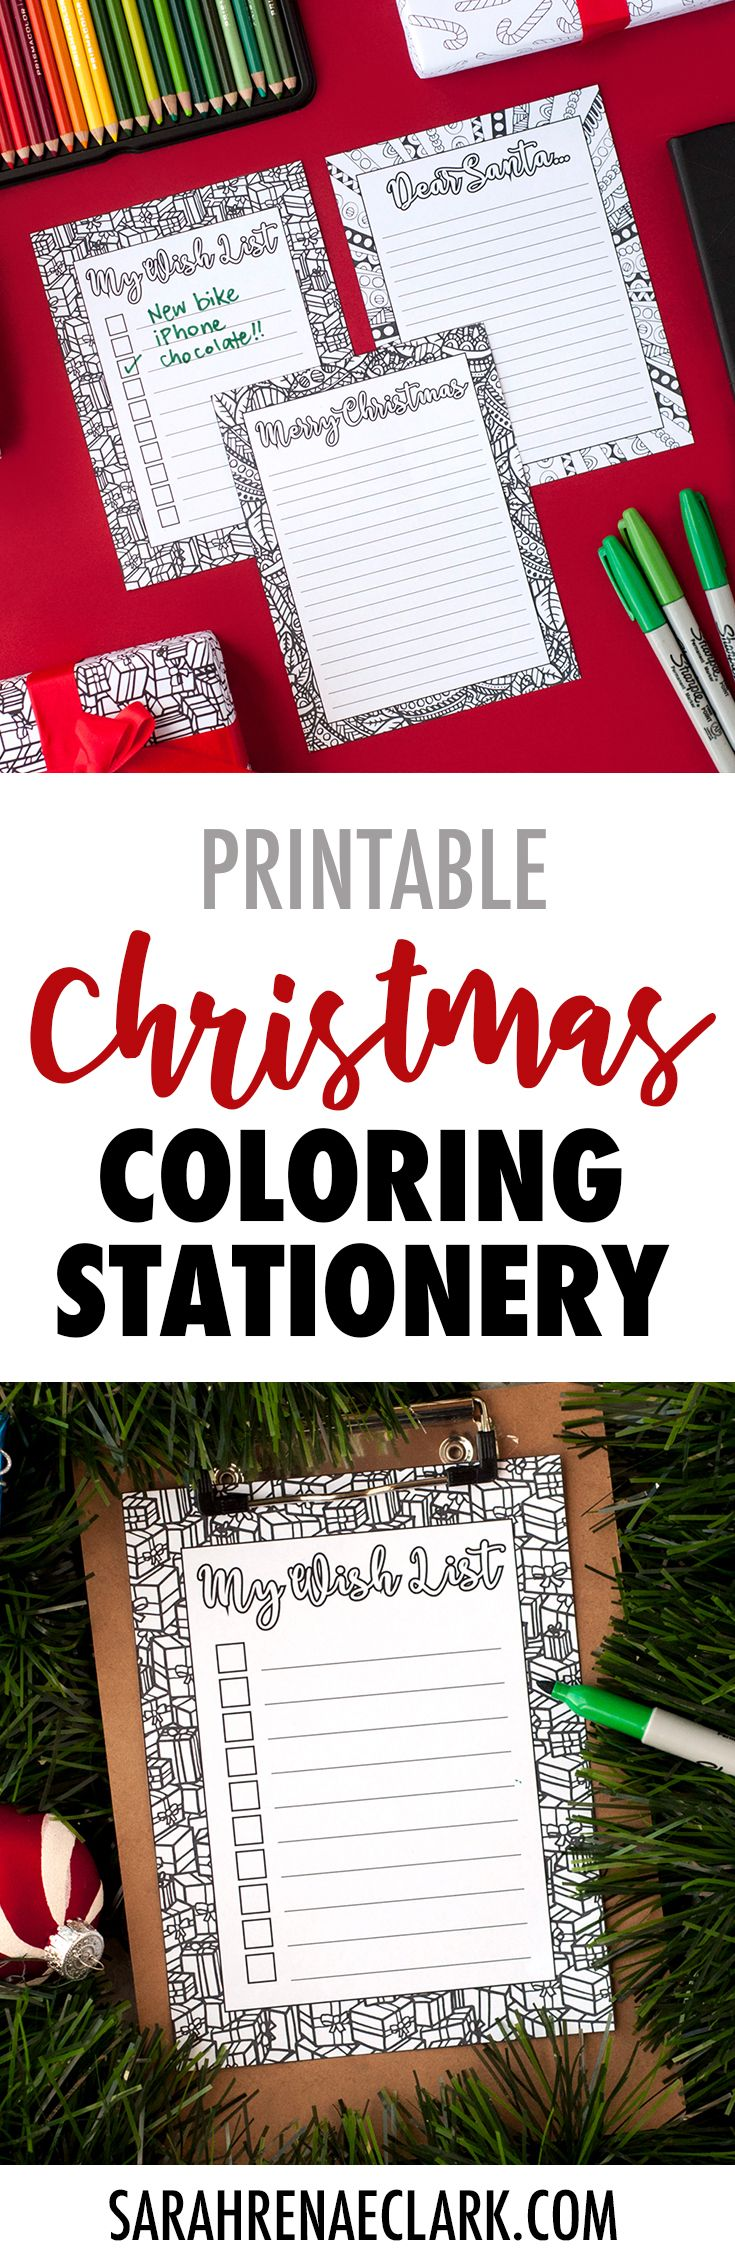 Color your own Christmas stationery with these fun holiday templates! Send a Christmas letter to a friend, write a letter to Santa with your kids or make your own gift wish list on these coloring Christmas letterheads.